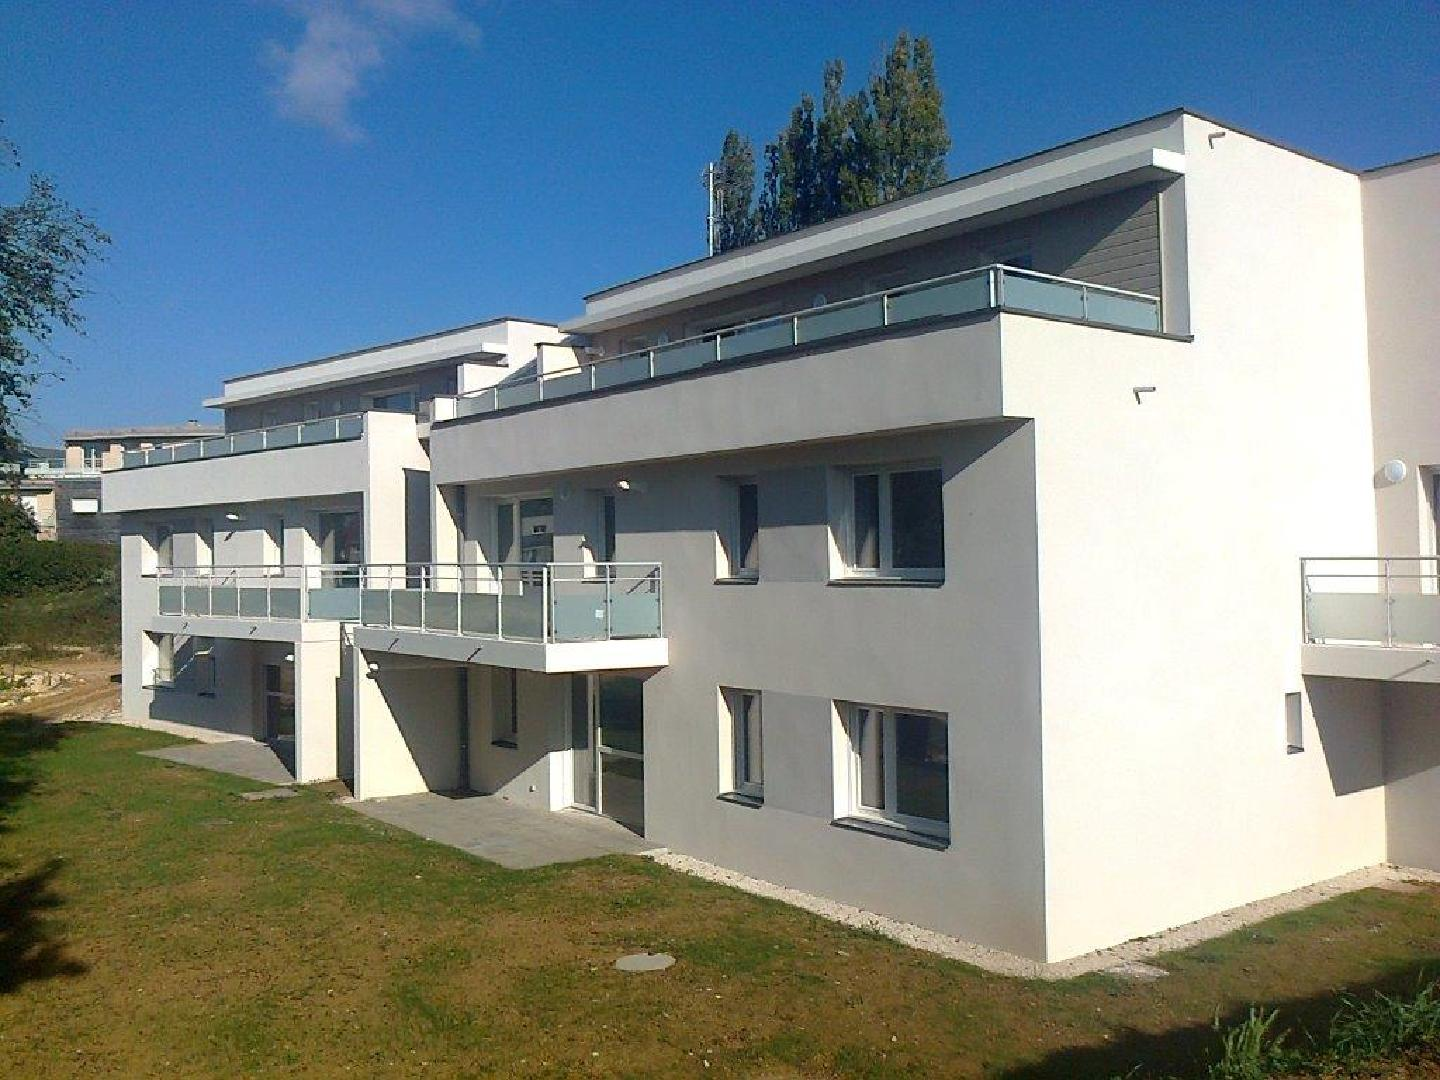 Achat vente appartement f3 programme neuf du t3 au t4 for Appartement f3 neuf